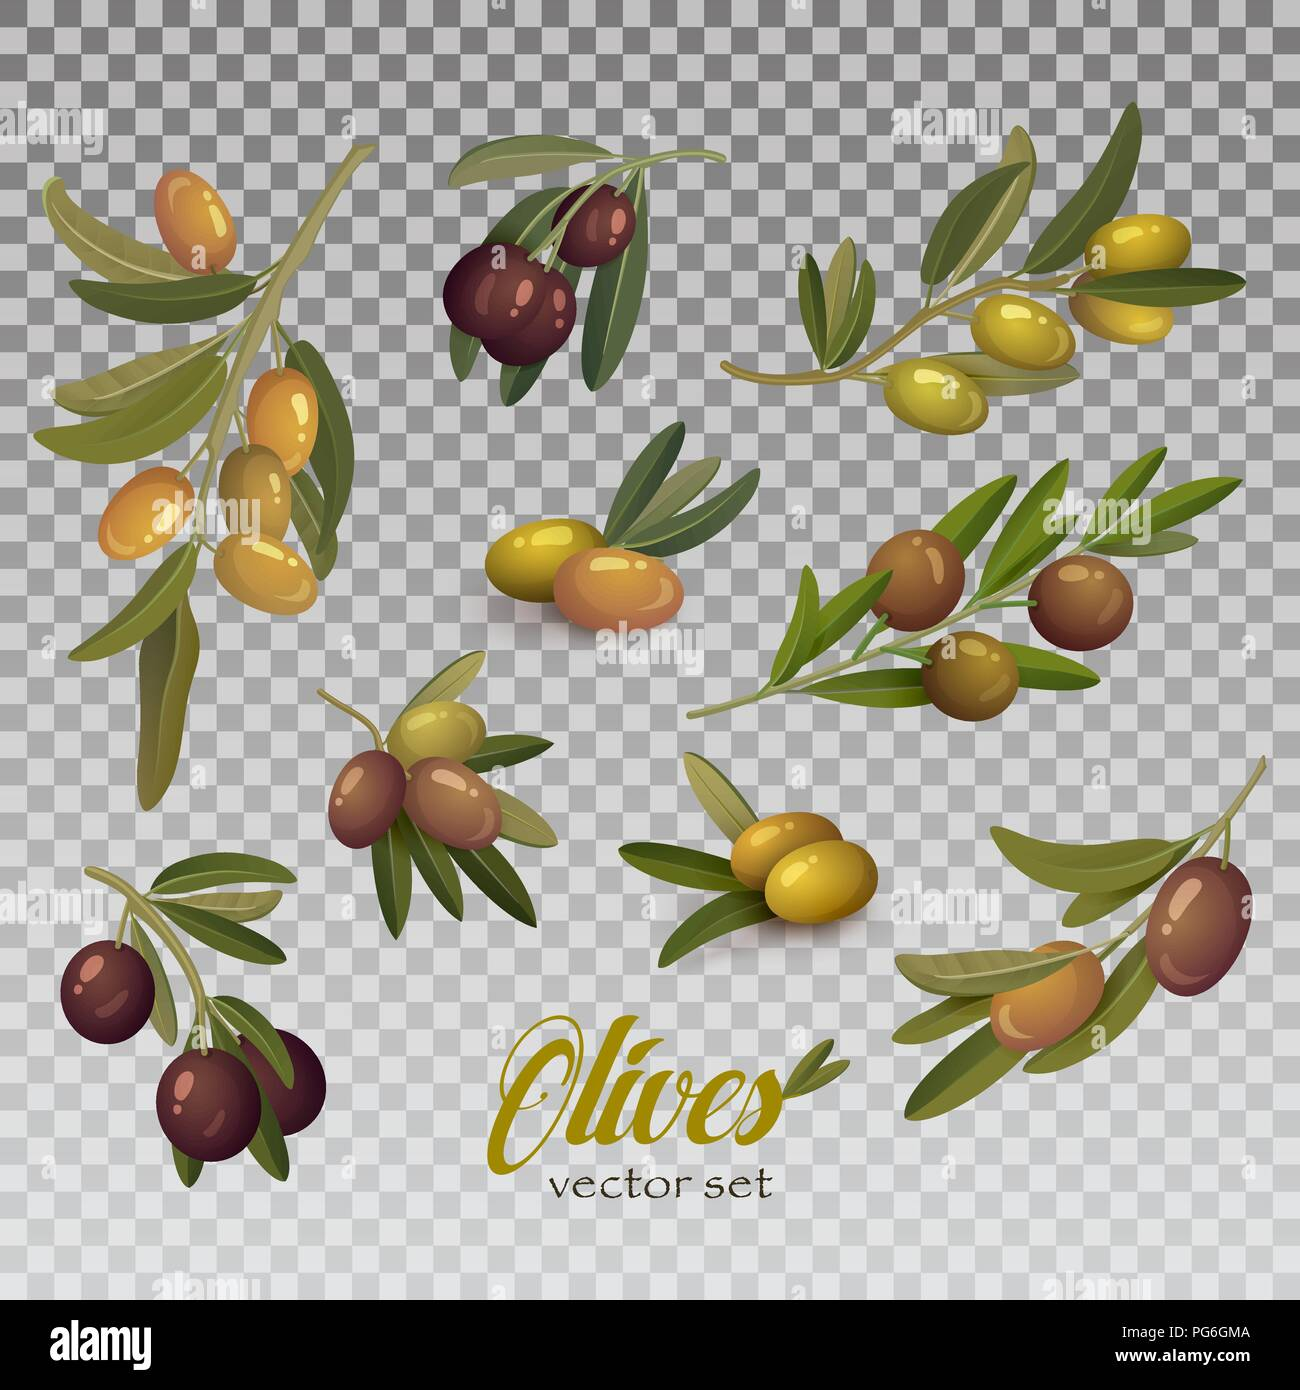 Isolated olive branch with ripe and raw berries with bleaks. Fruit food on tem logo or organic eat badge. May be used for herbal or vegan market banner, liquid ingredient or natural vitamin theme. - Stock Vector